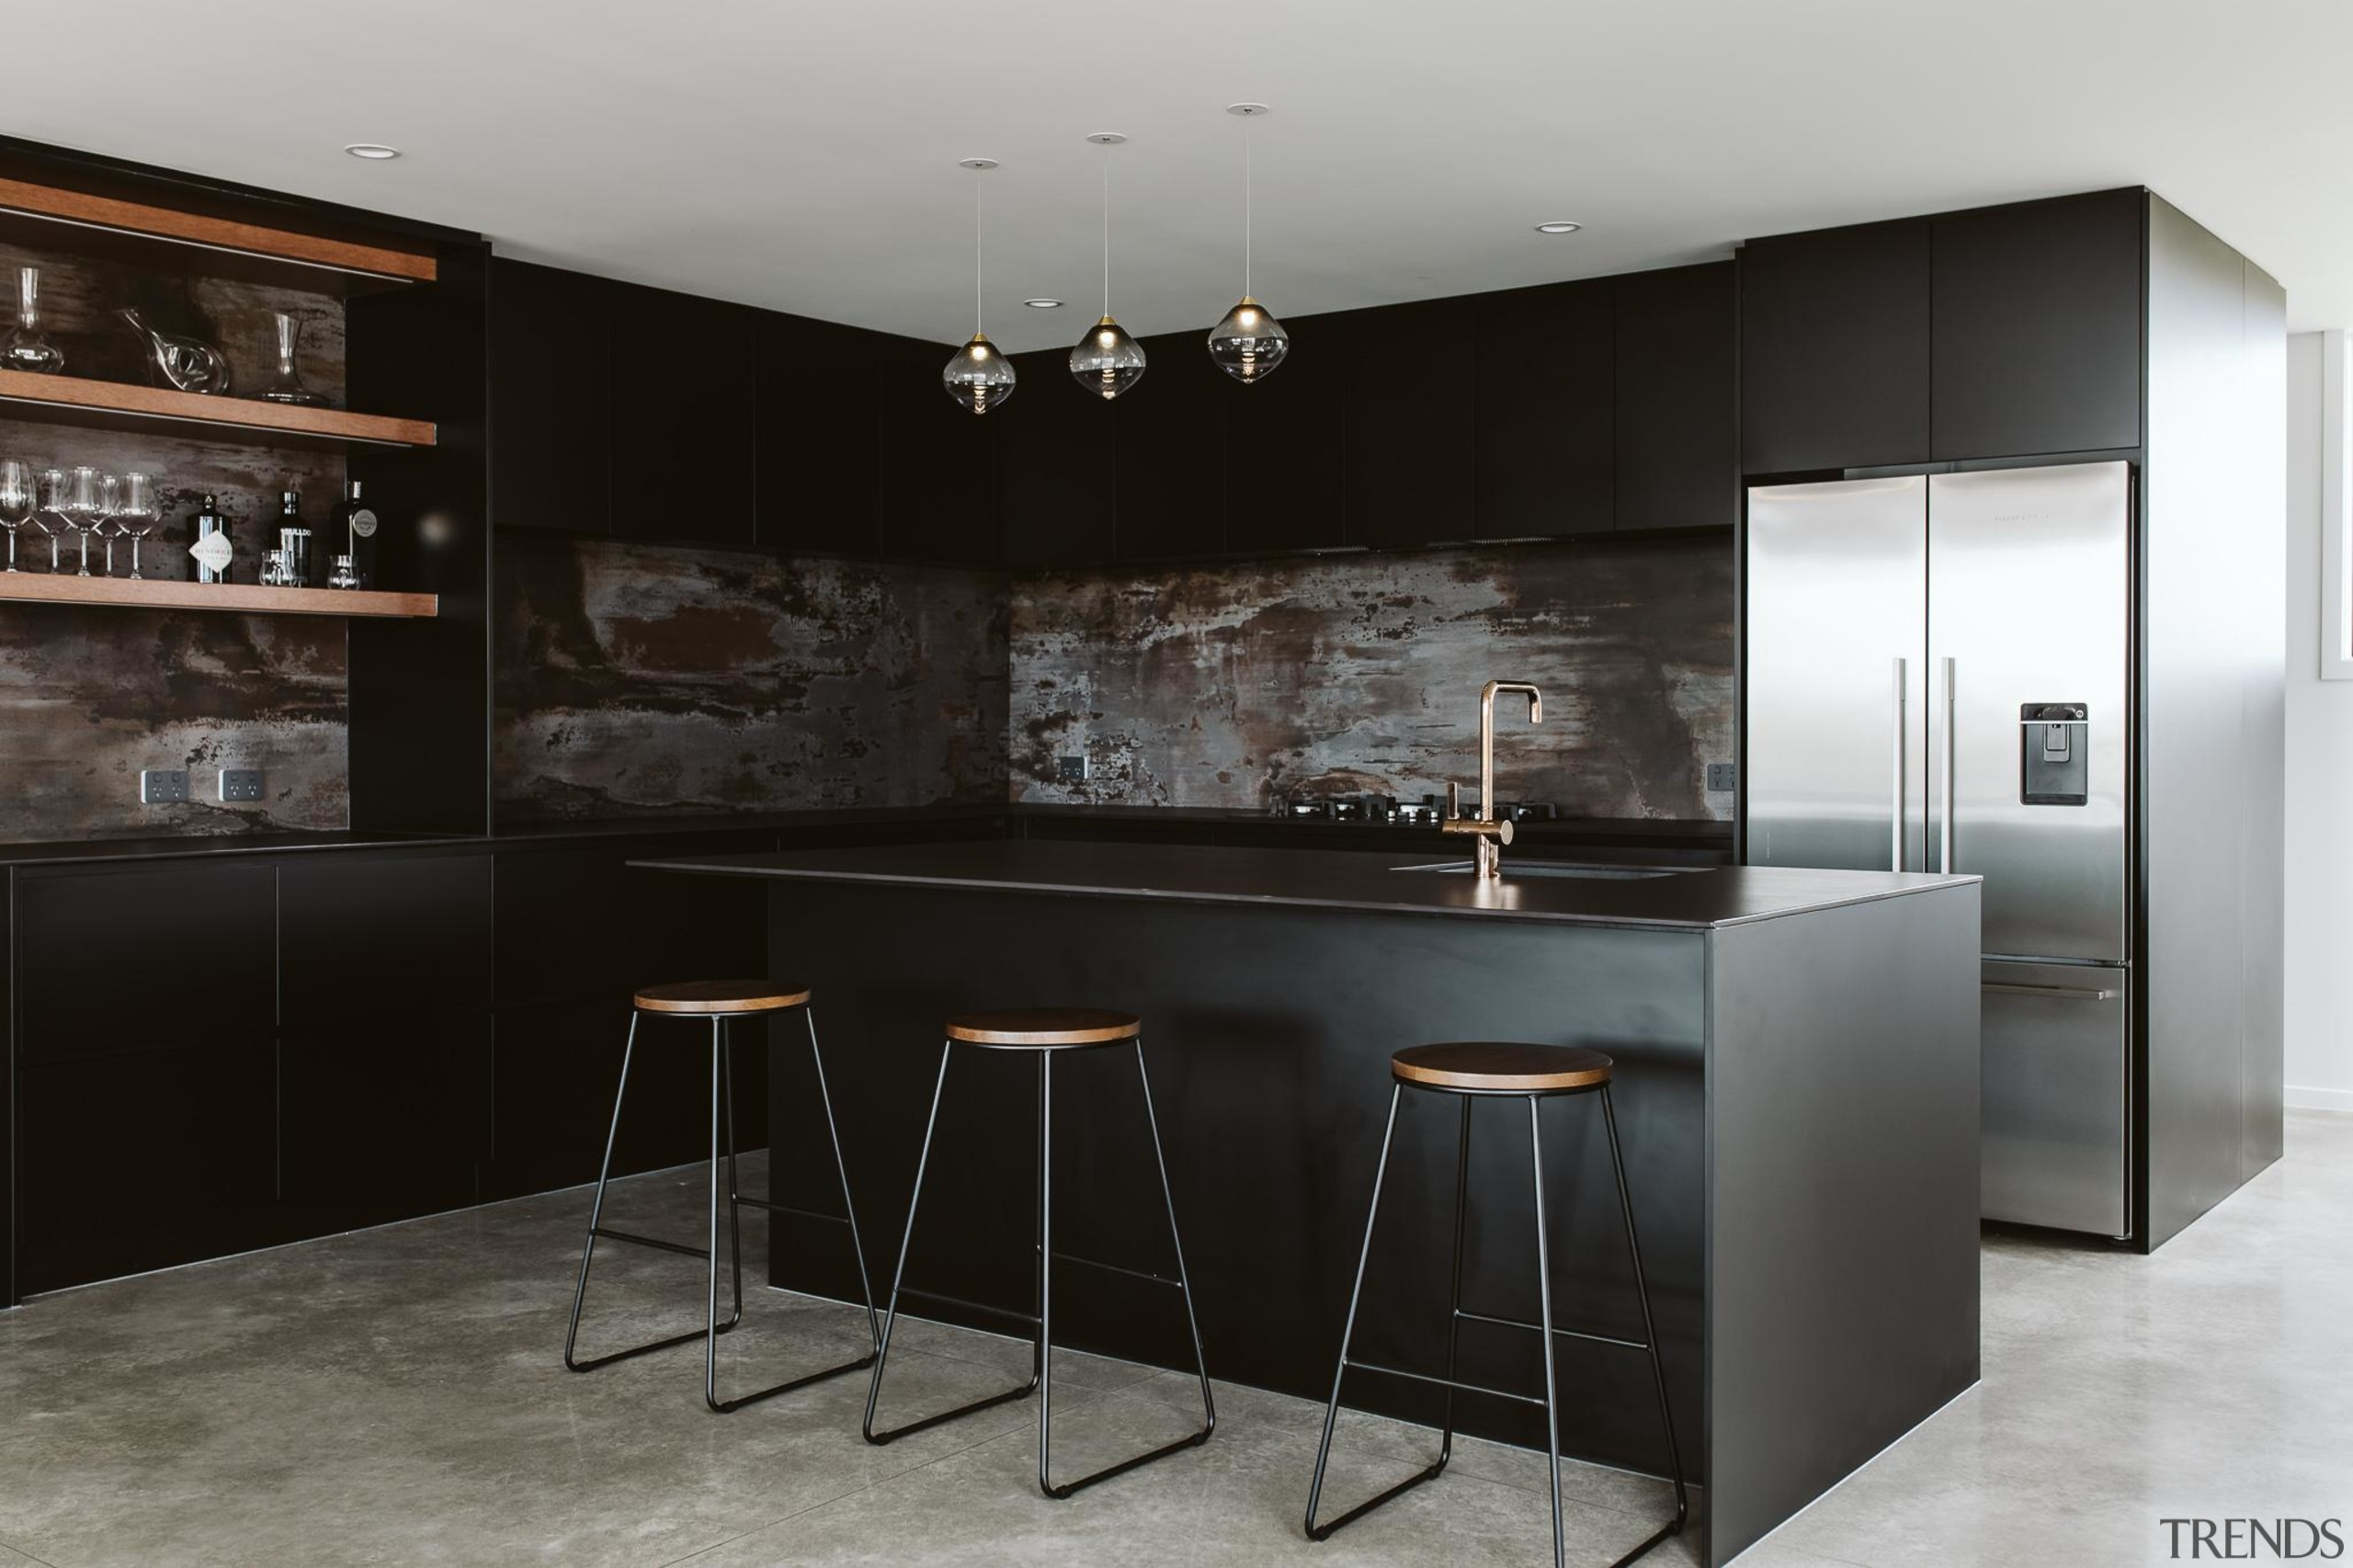 Highly Commended – Annika Rowson – Rowson Kitchens bar stool, black, building, cabinetry, ceiling, countertop, cupboard, design, dining room, floor, flooring, furniture, home, house, interior design, kitchen, kitchen stove, material property, property, room, table, black, gray